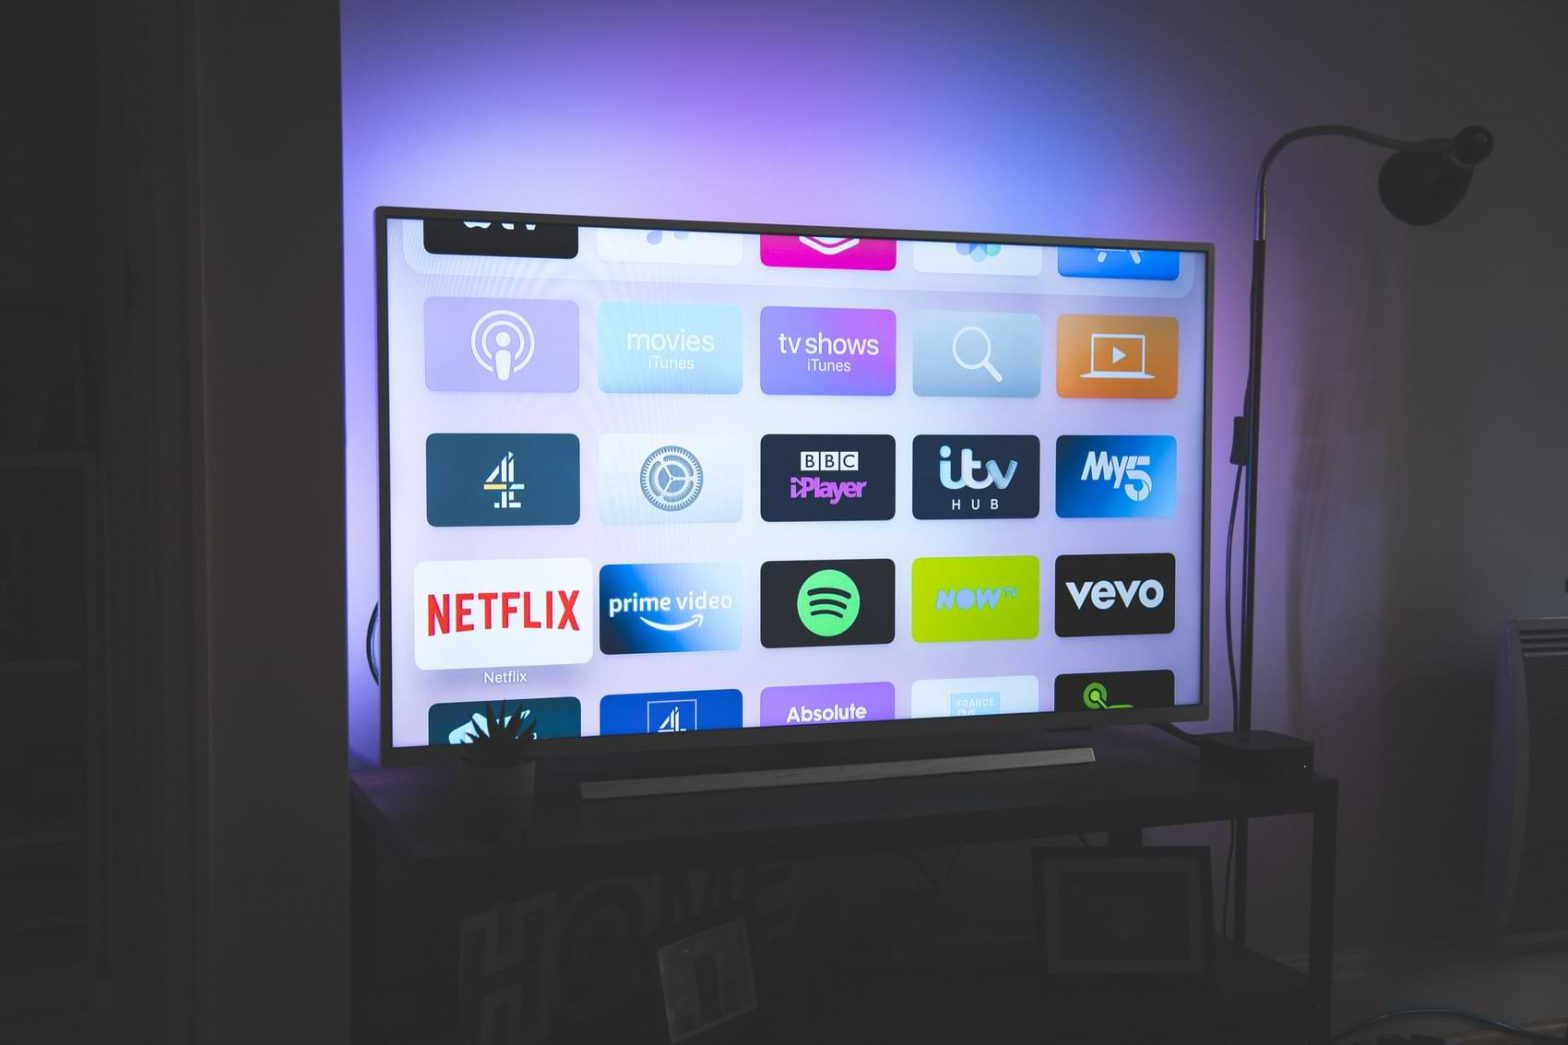 A Smart TV displays various apps like Netflix, Spotify, iTV Hub and more.